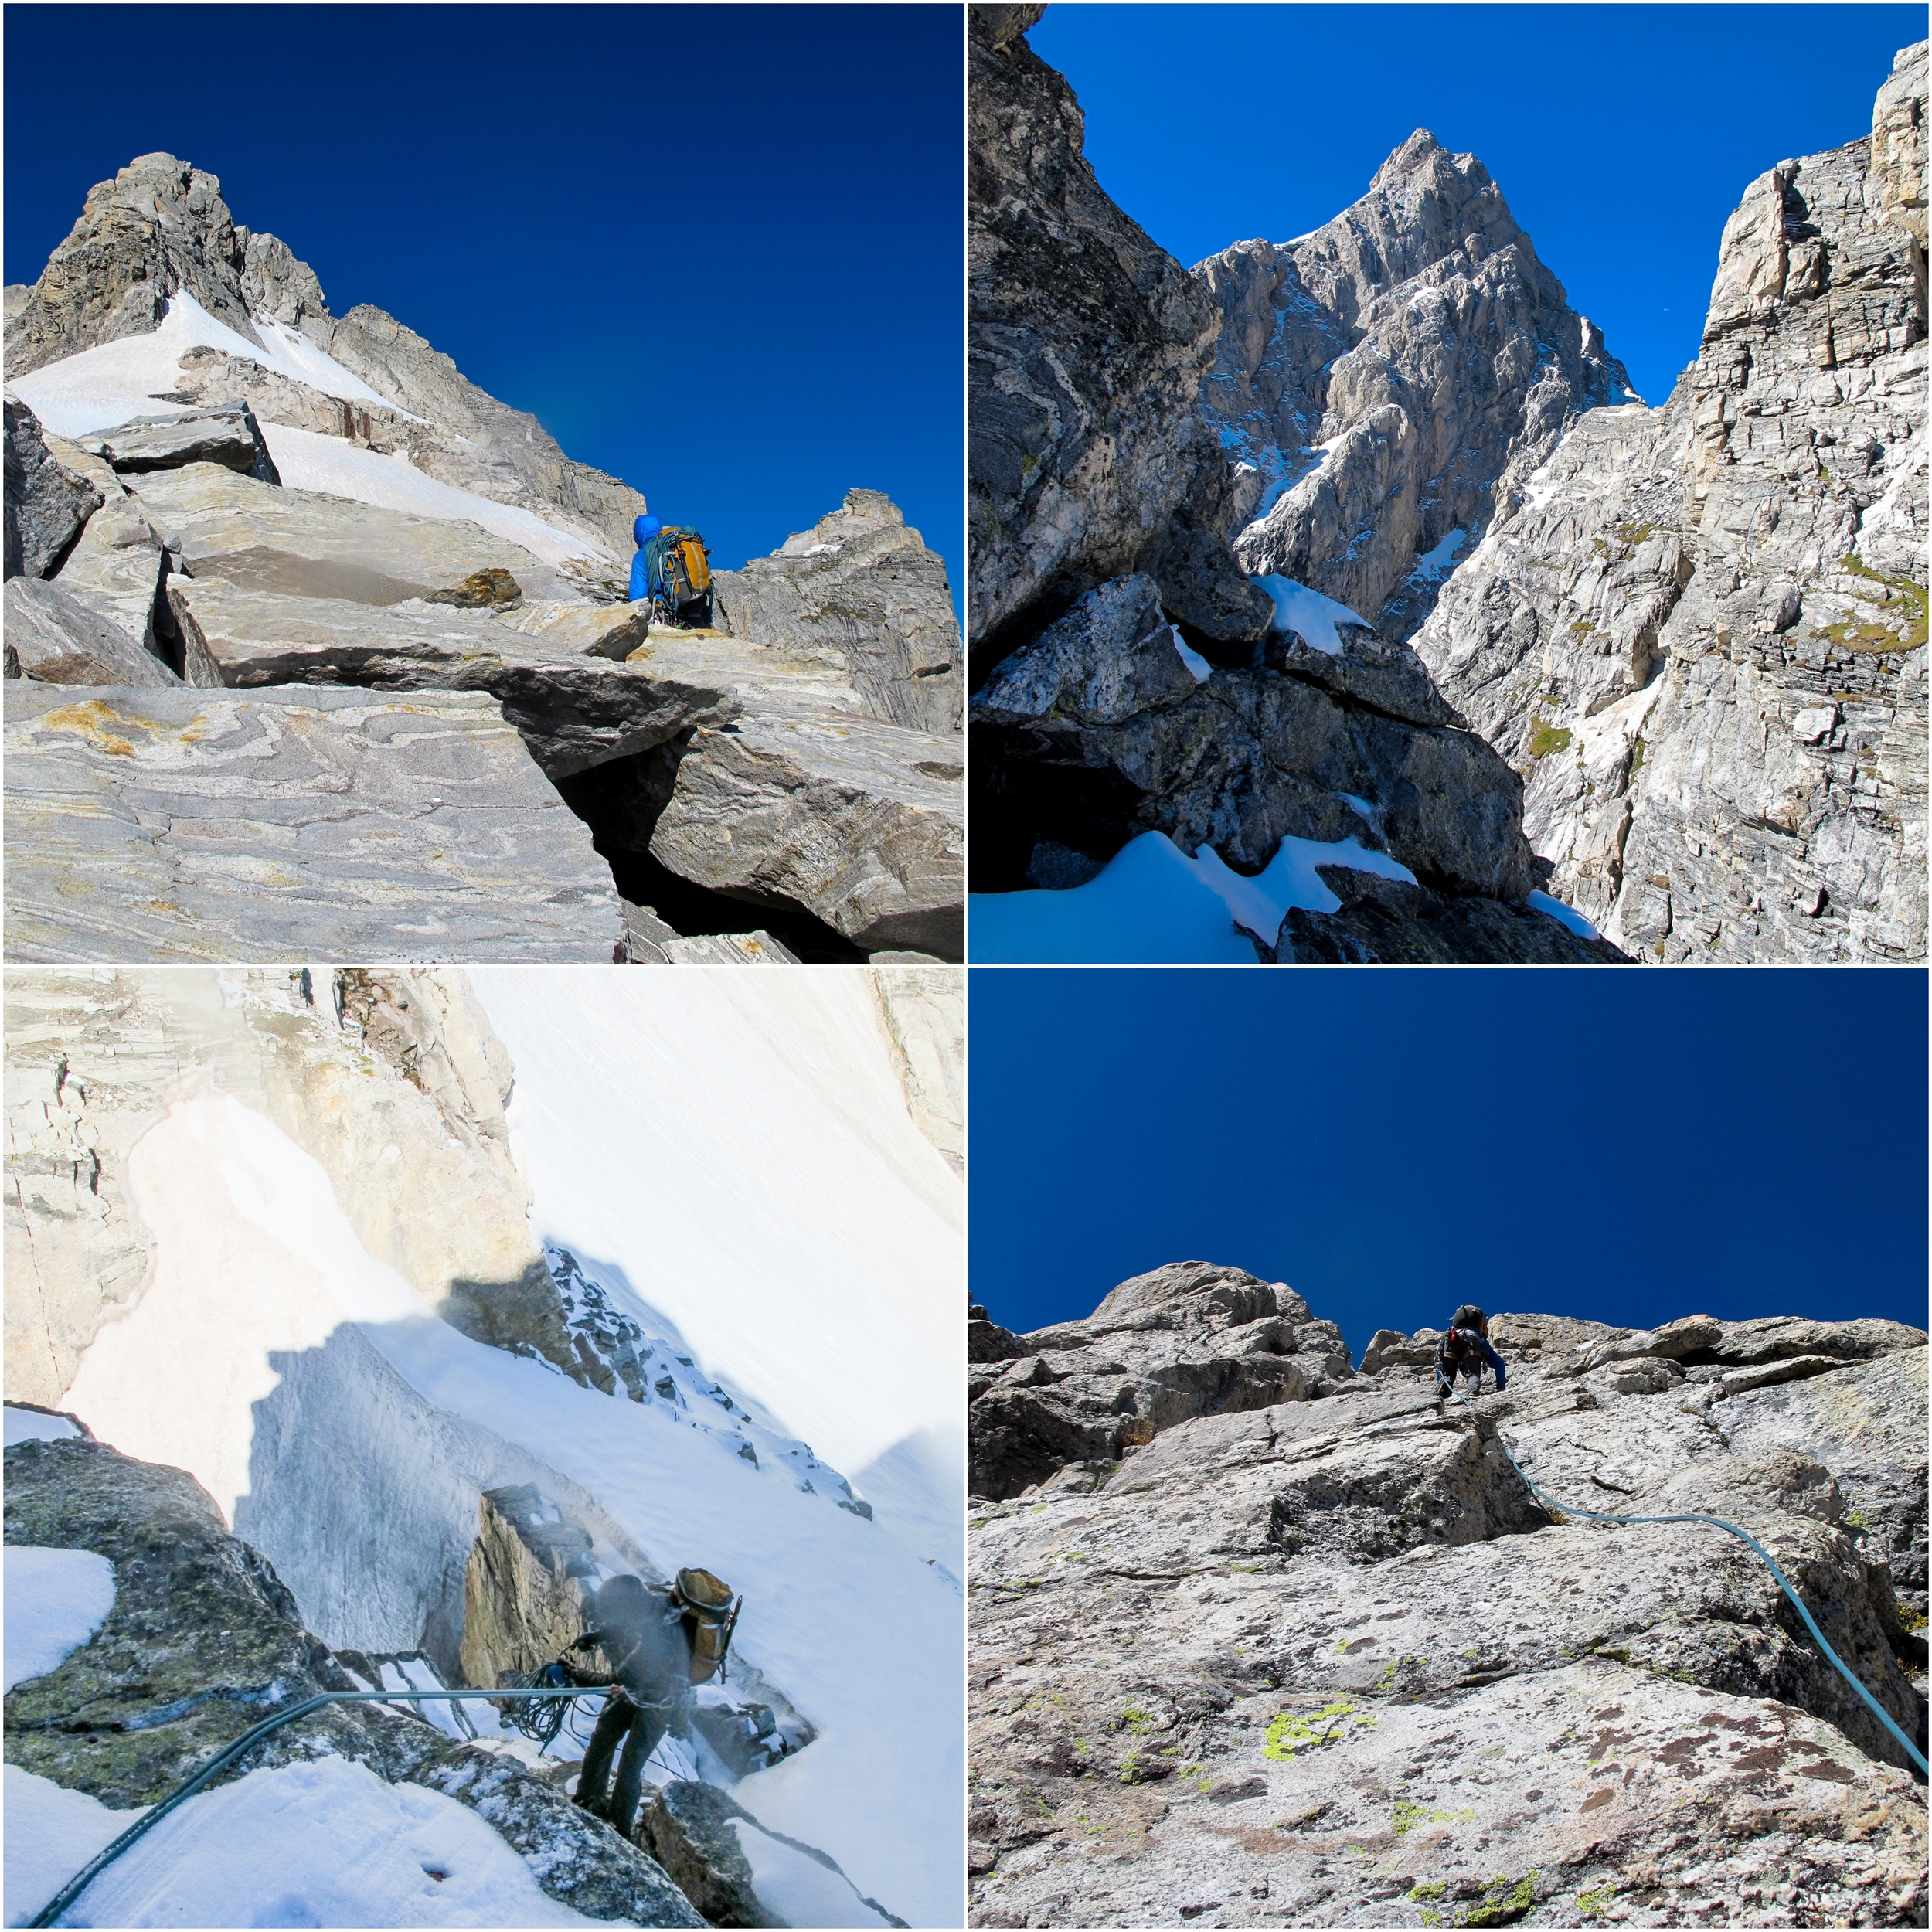 (Top Left) Approach to Mt. Owen. (Top Right) The Grand as seen through the Coven Col (Bottom Right) Climbing Mt. Owen (Bottom Left) Full alpine conditions descending down to Mt. Owen.